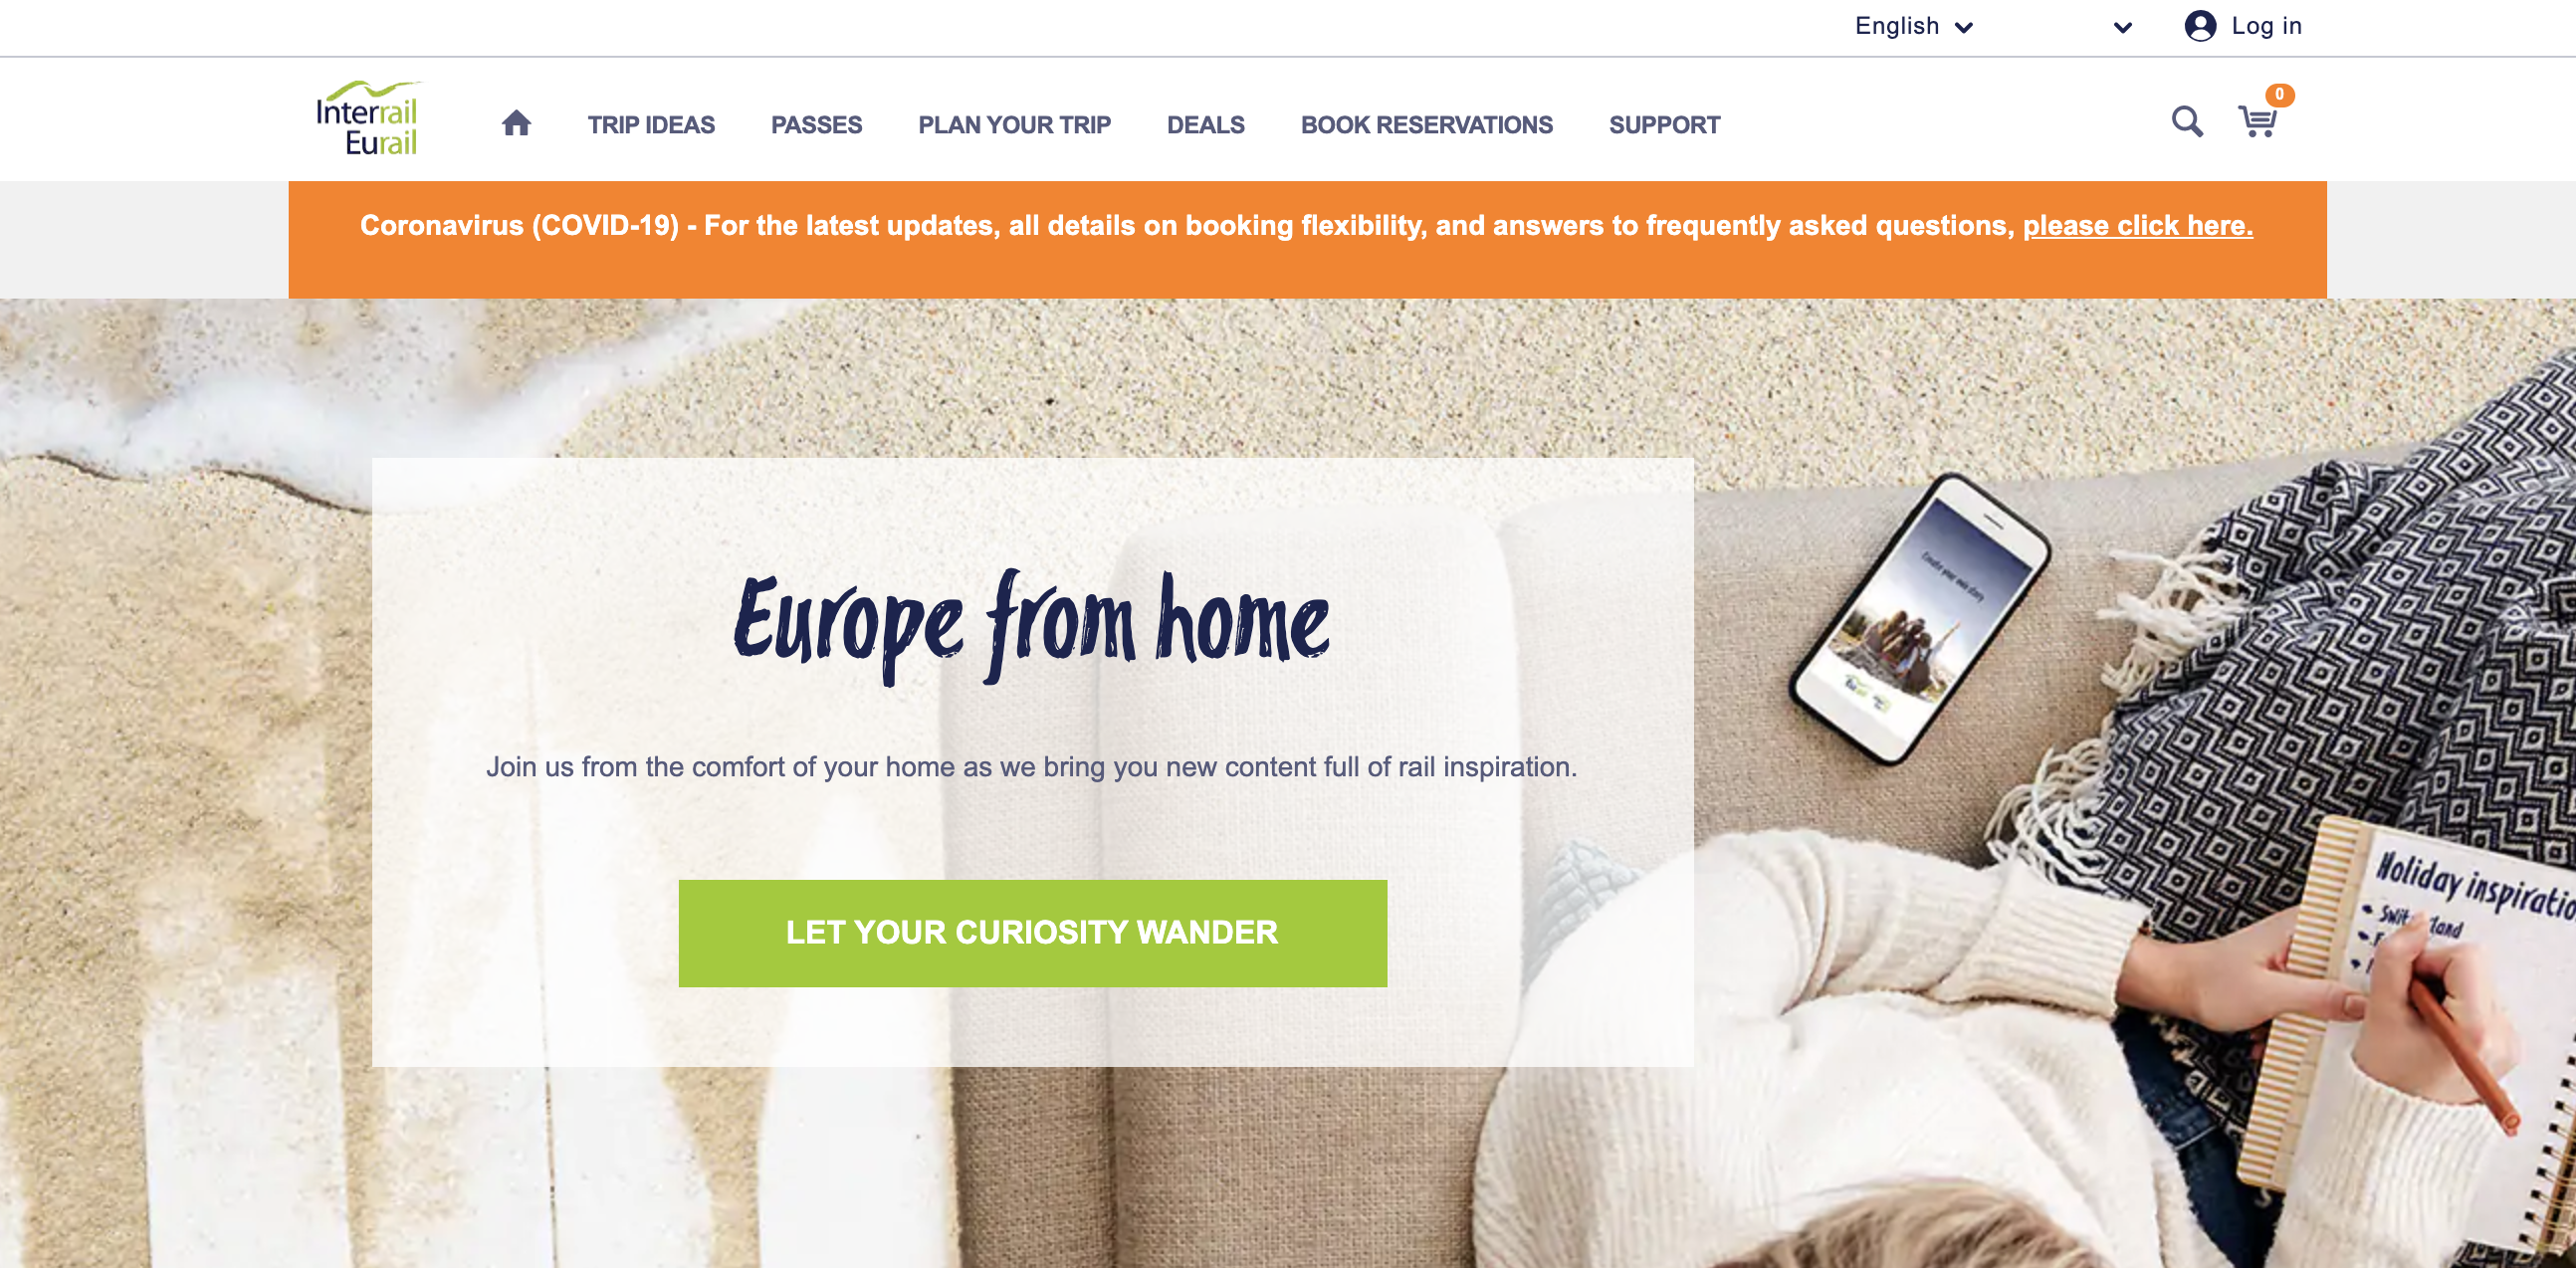 Interrail website